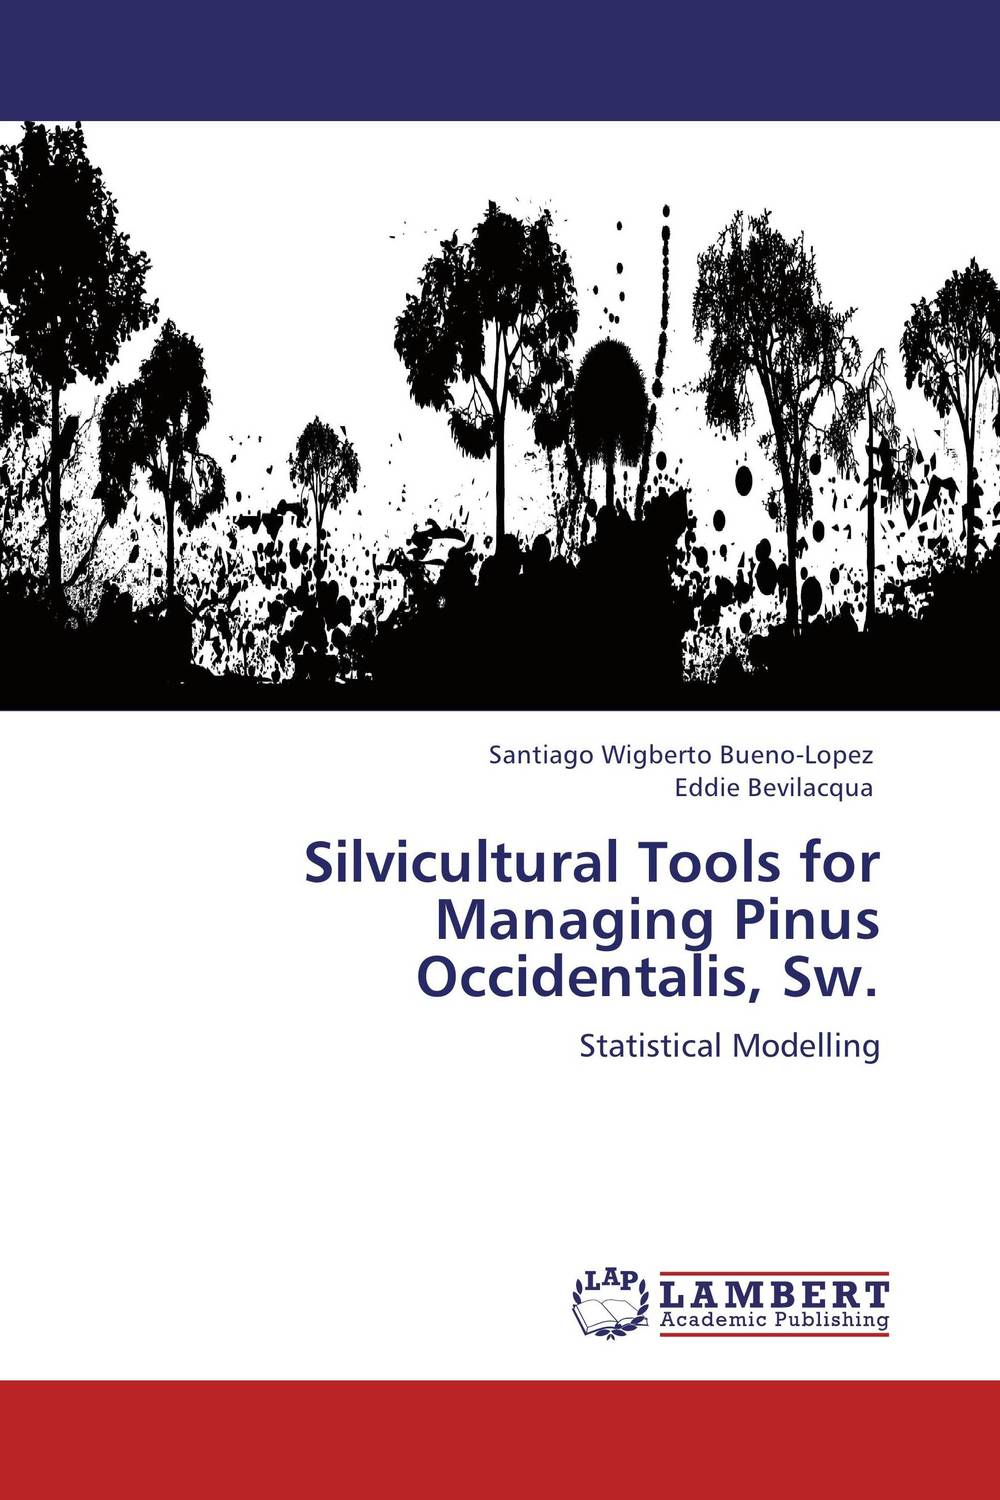 Silvicultural Tools for Managing Pinus Occidentalis, Sw. knights of sidonia volume 6